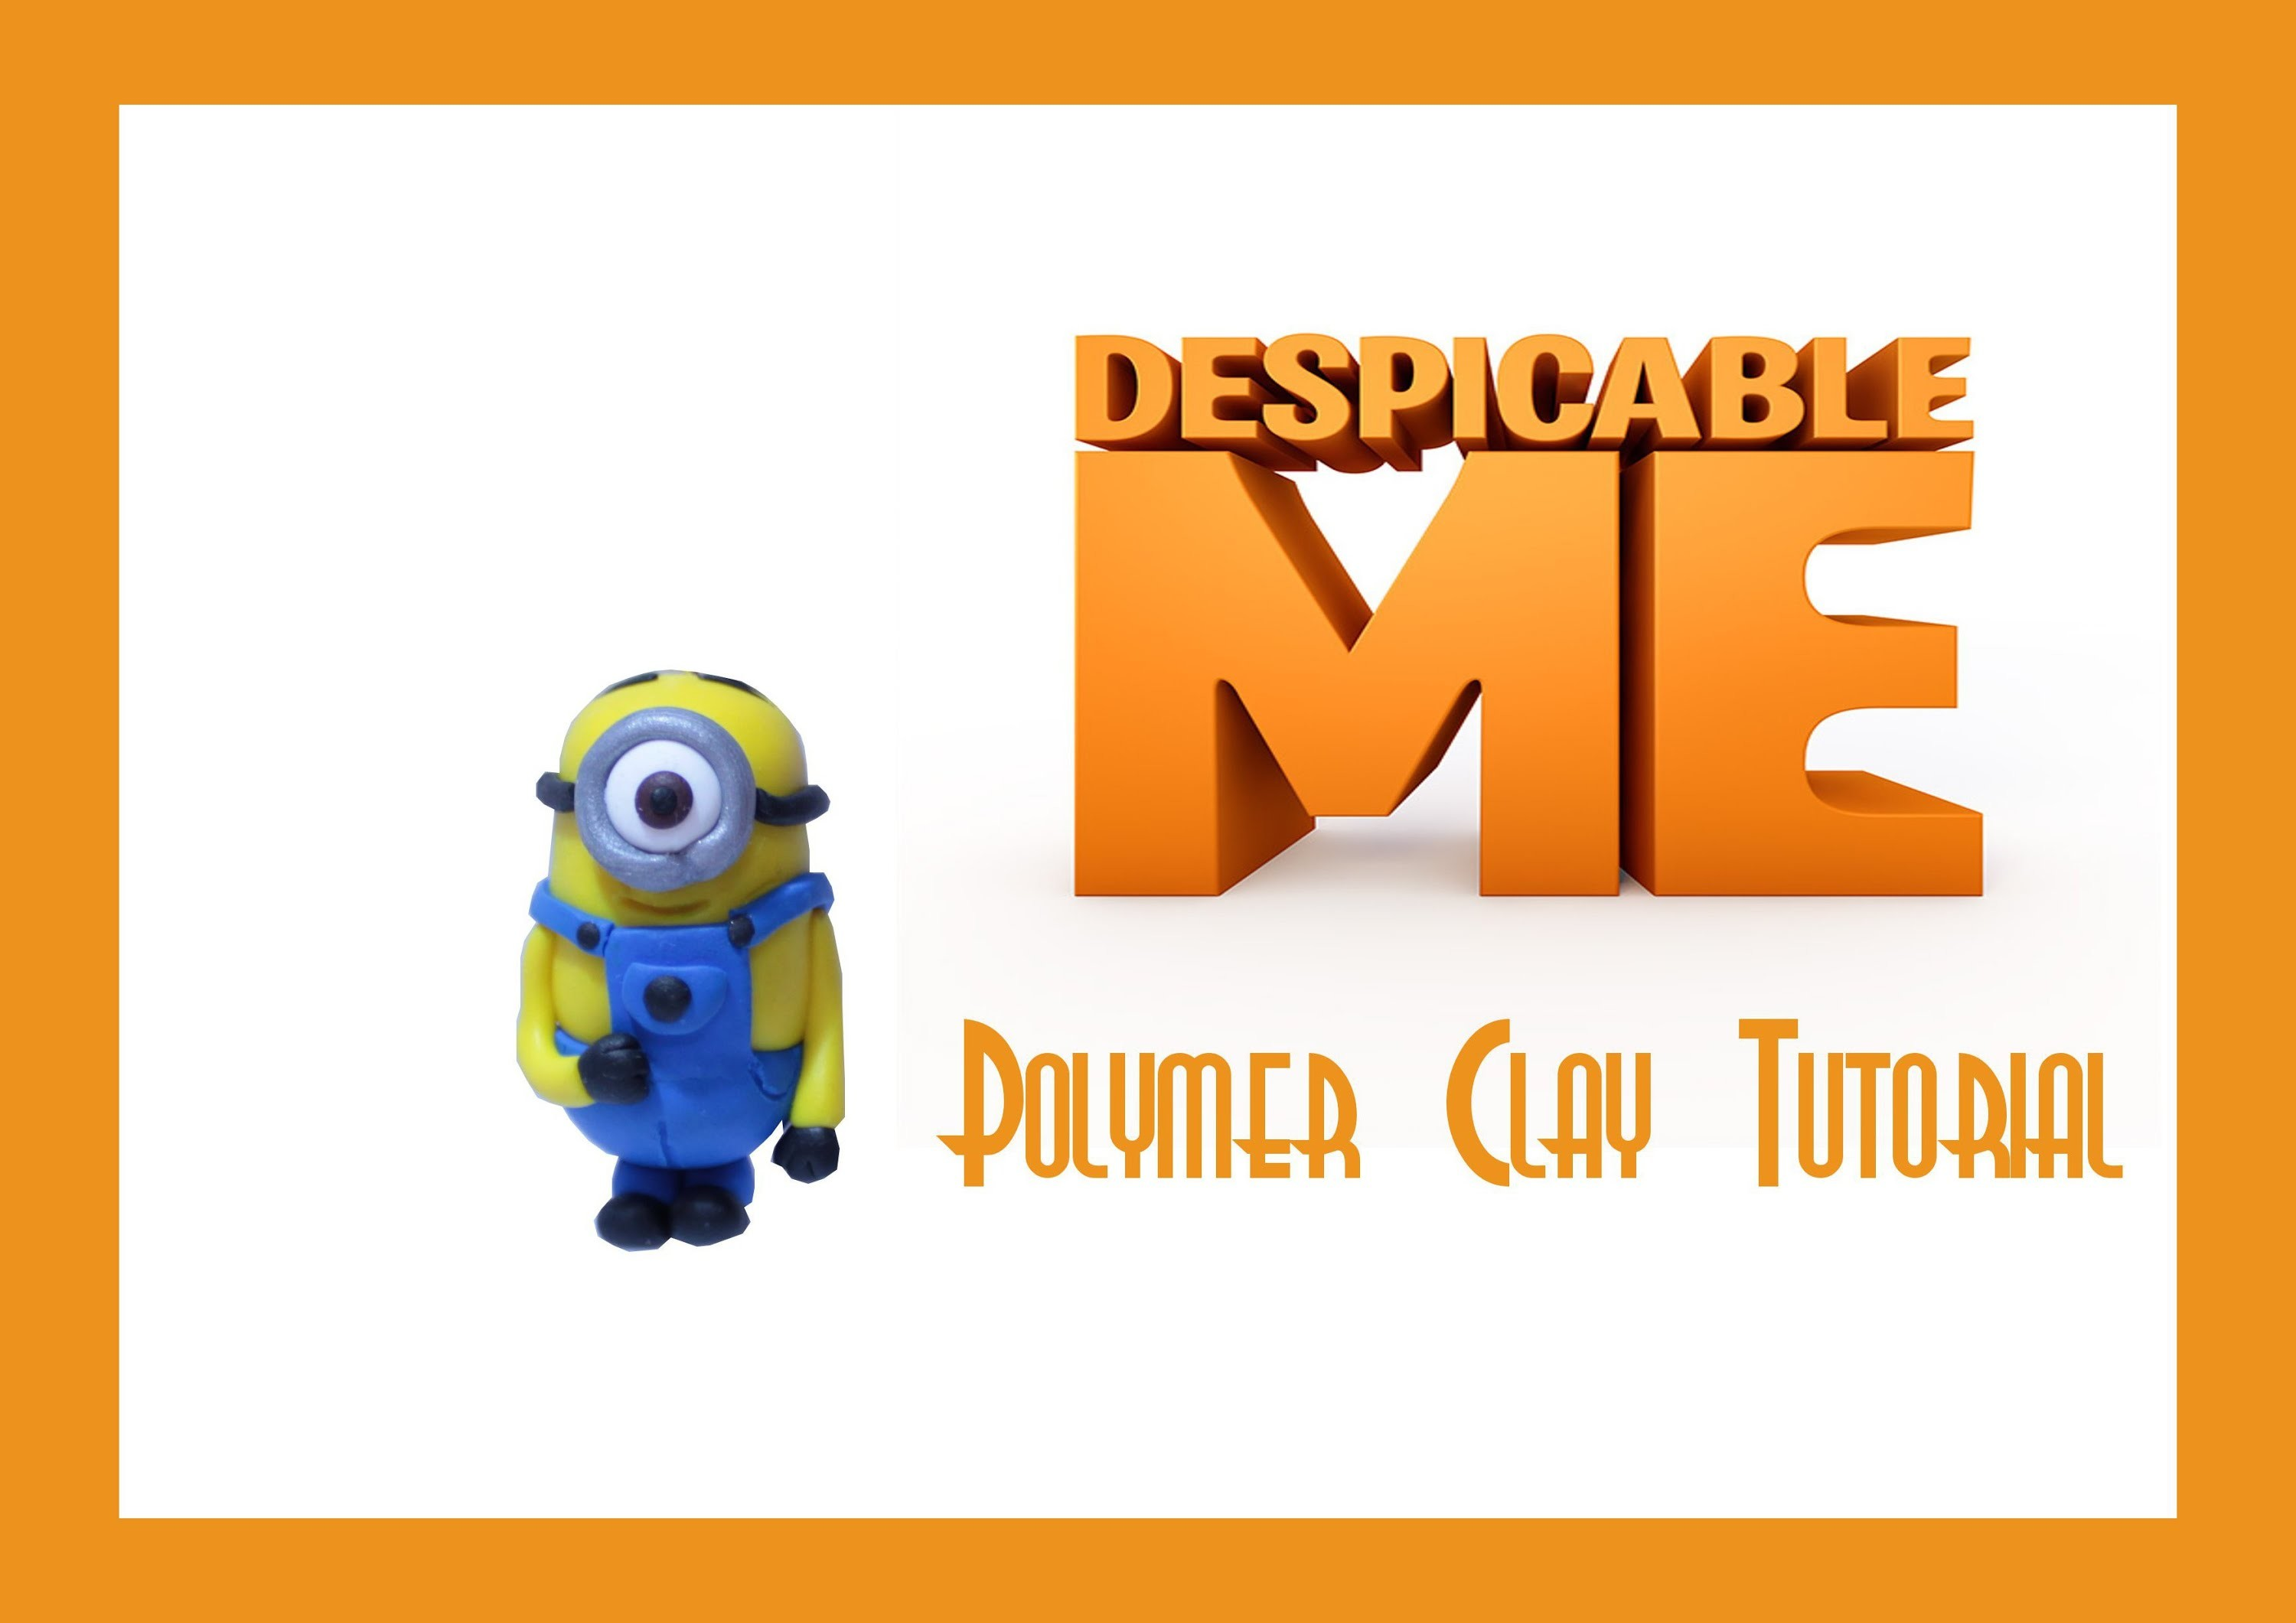 ❤ Minion Polymer Clay Tutorial (Despicable Me) ❤